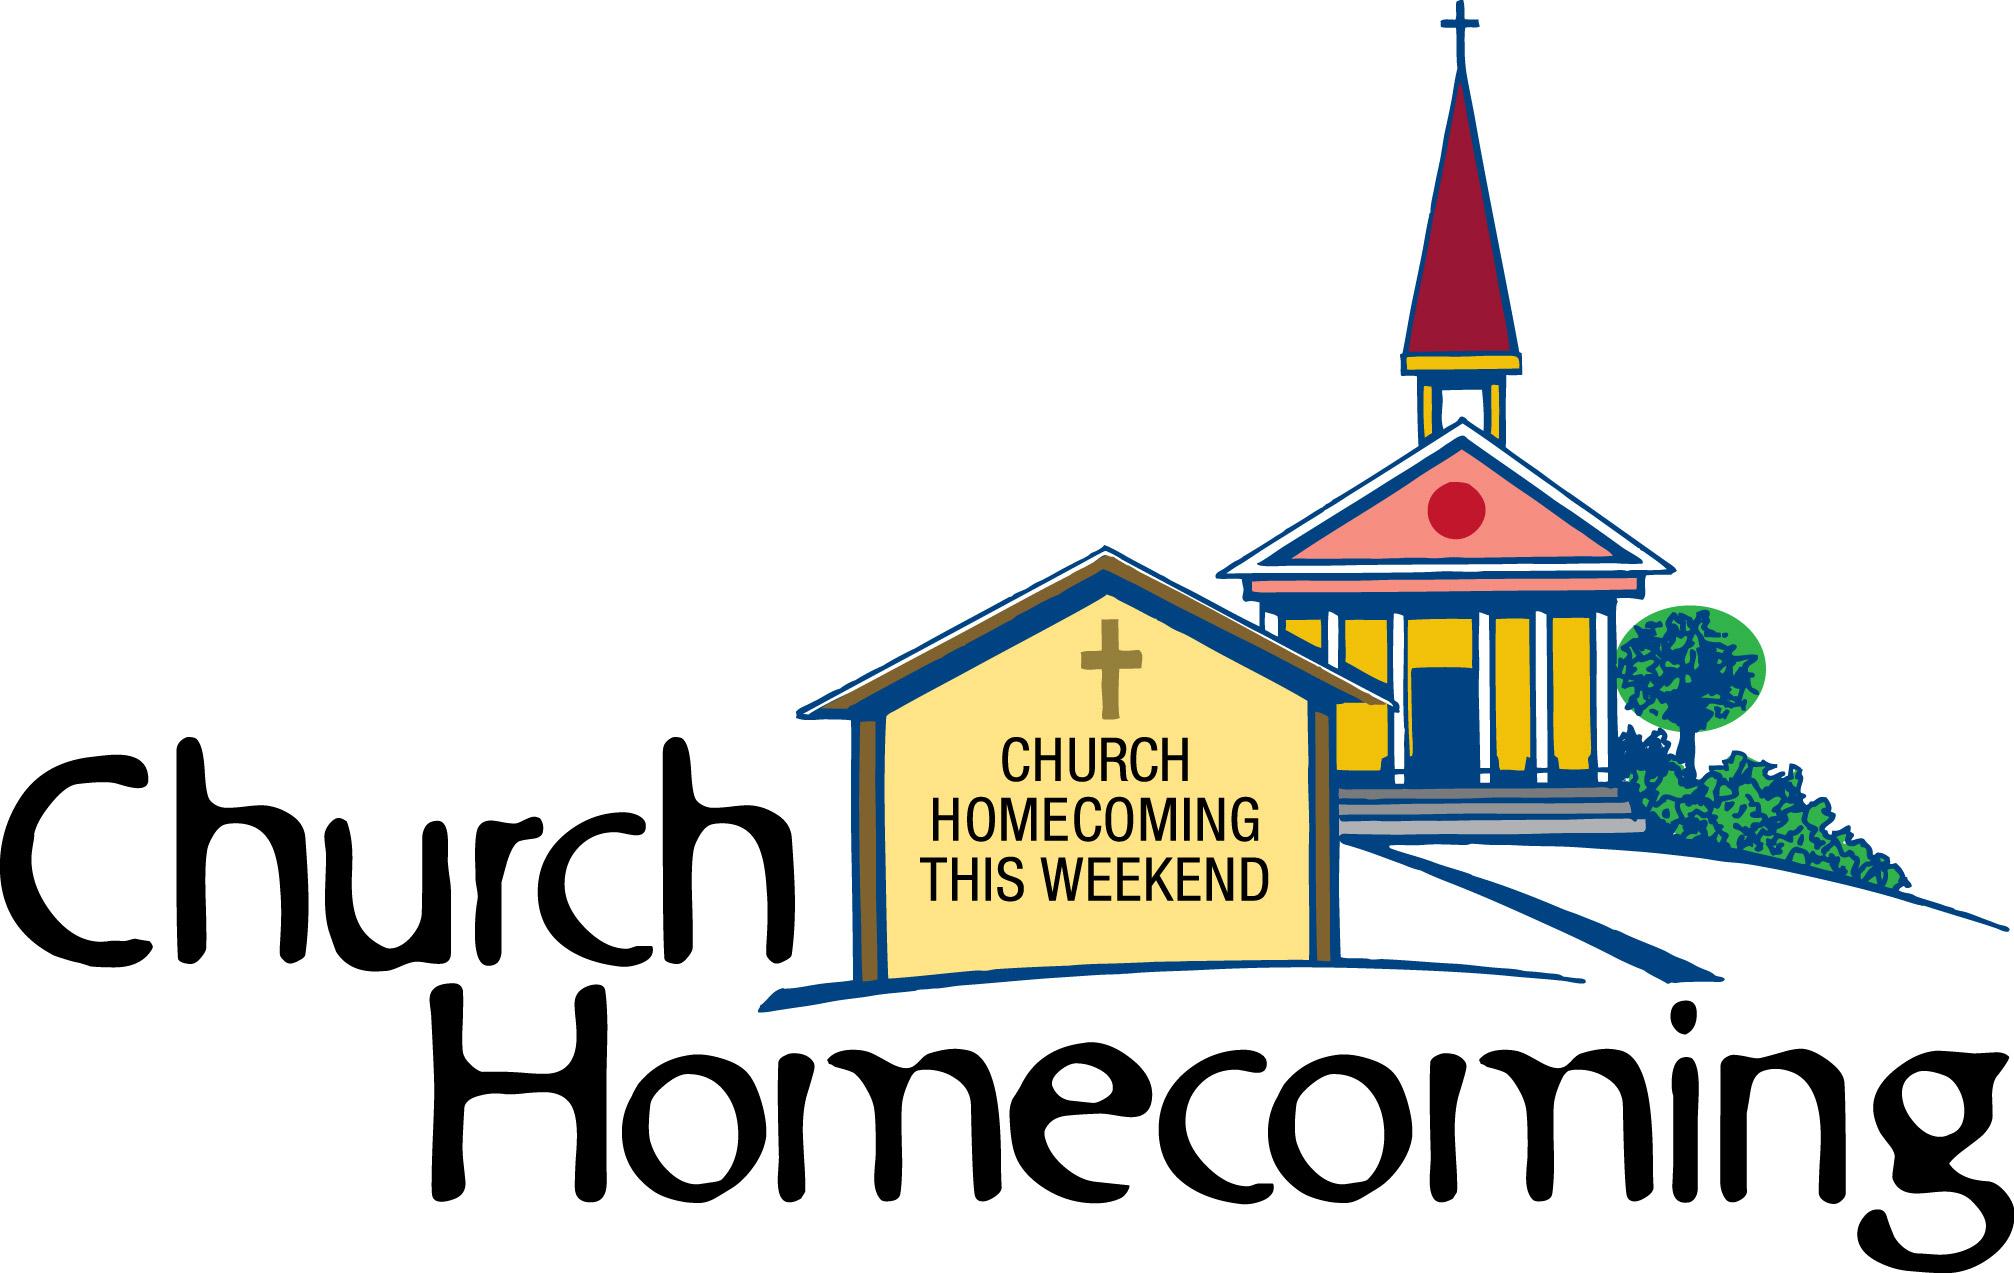 Free Homecoming Cliparts, Download Free Clip Art, Free Clip Art on.